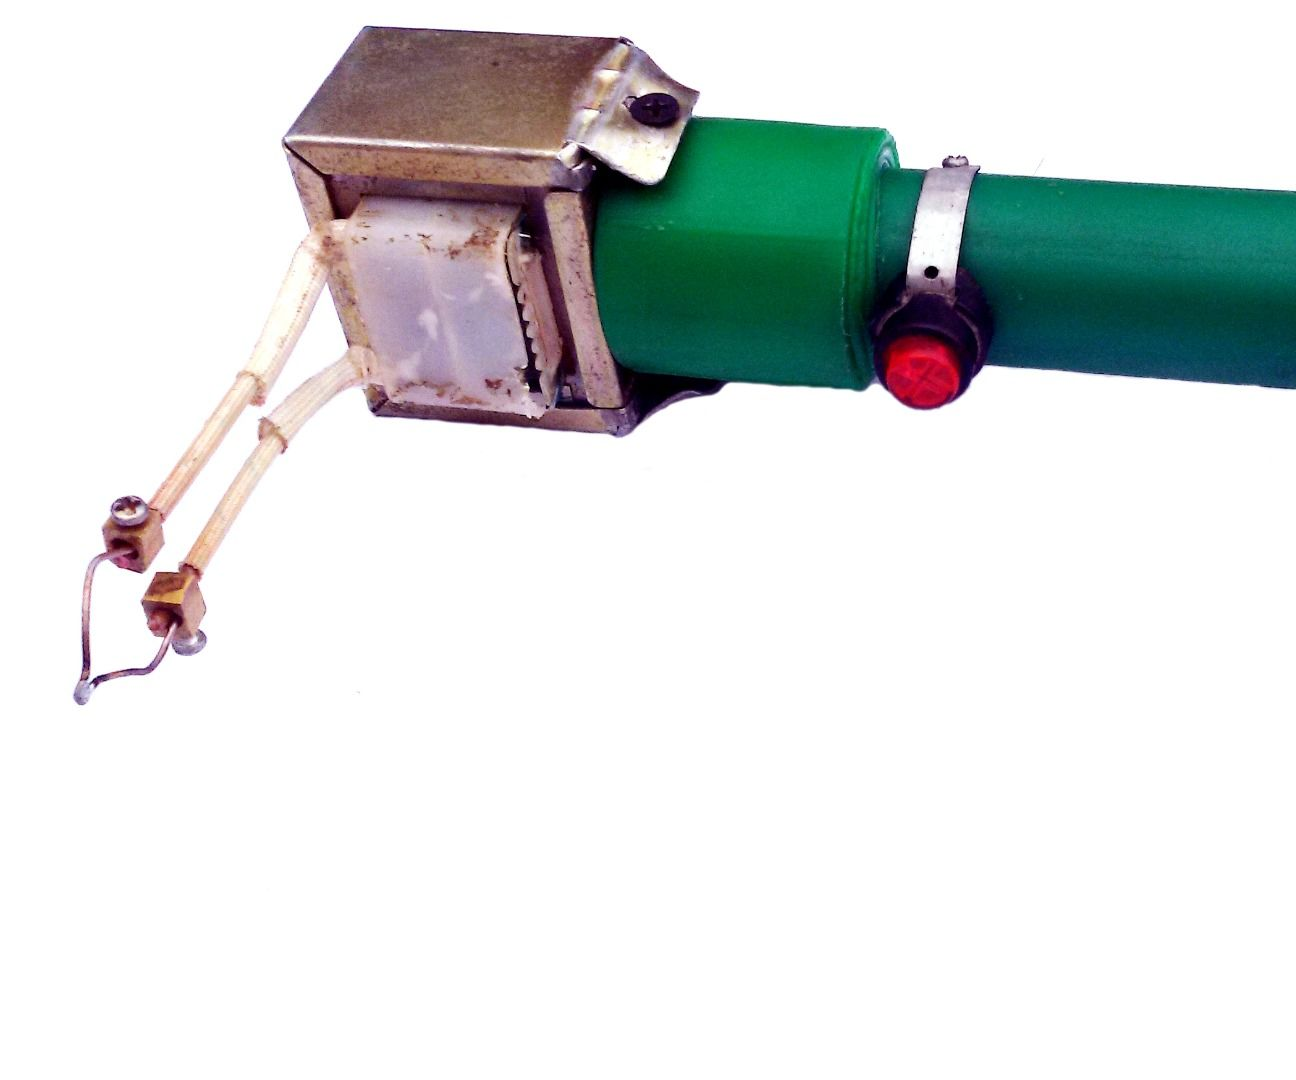 How to build Cheap and Trusty Soldering gun out of old transformer